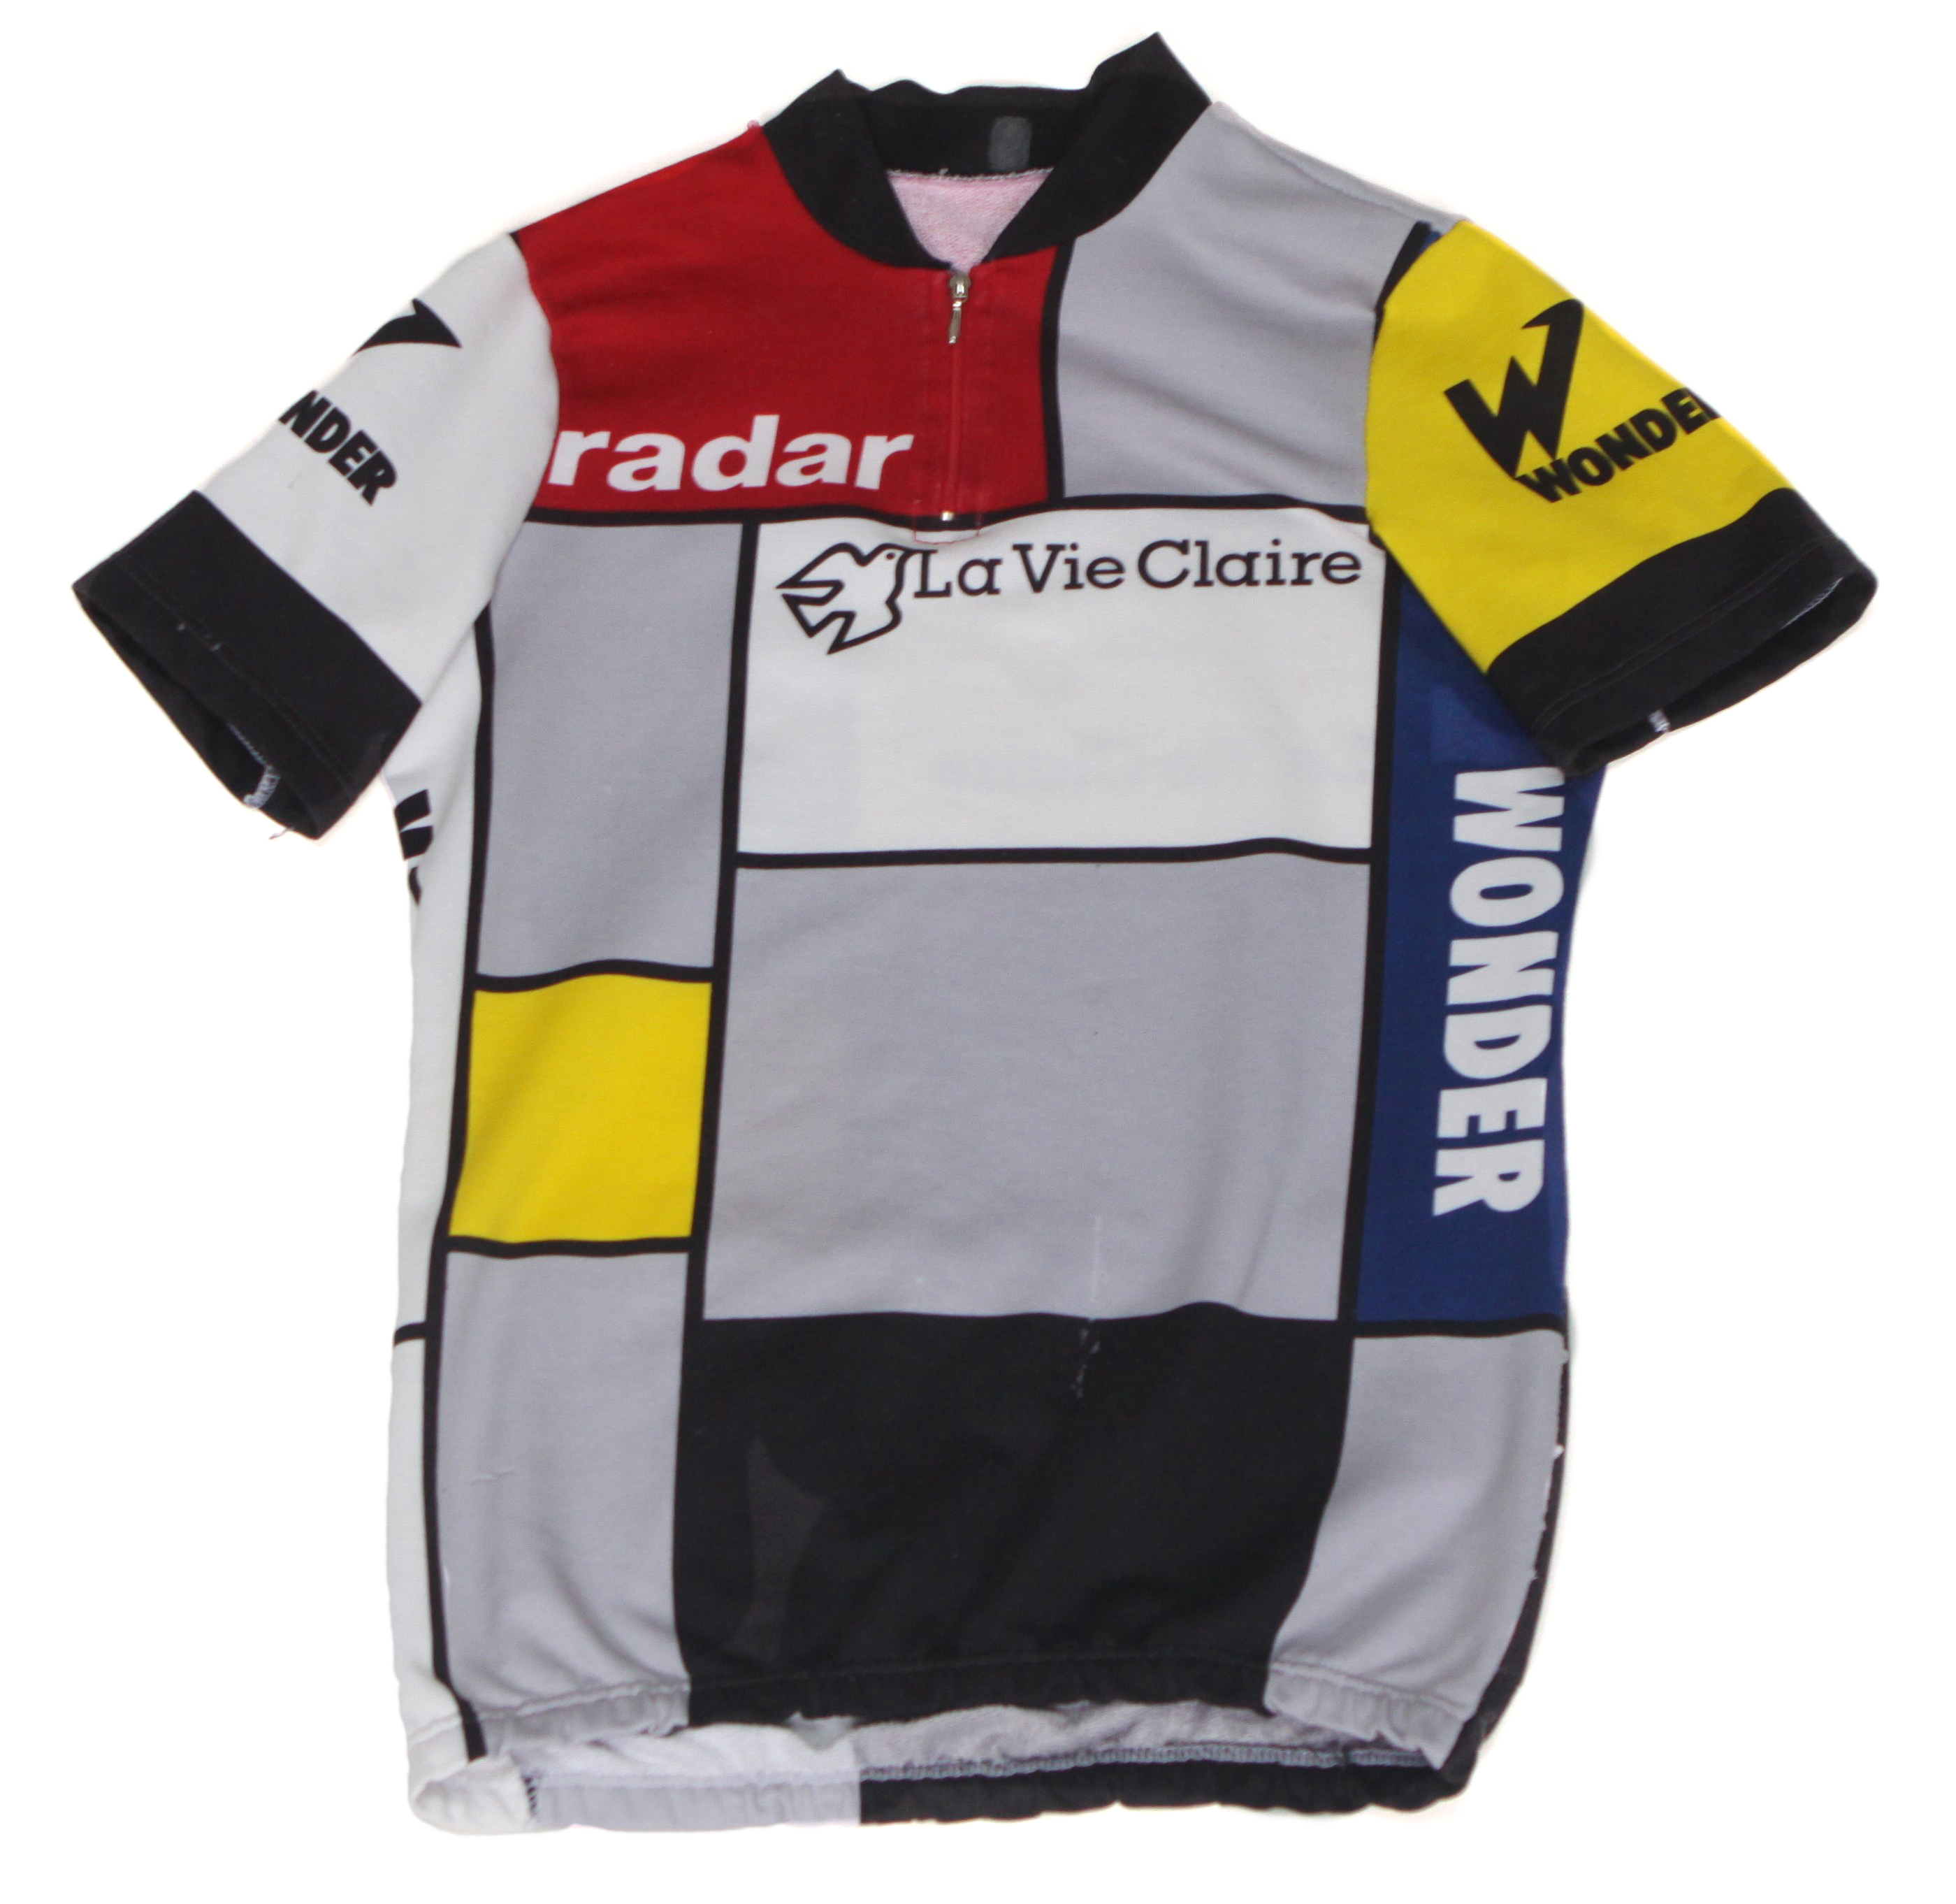 The Most Iconic Jerseys in Cycling History a8074c331